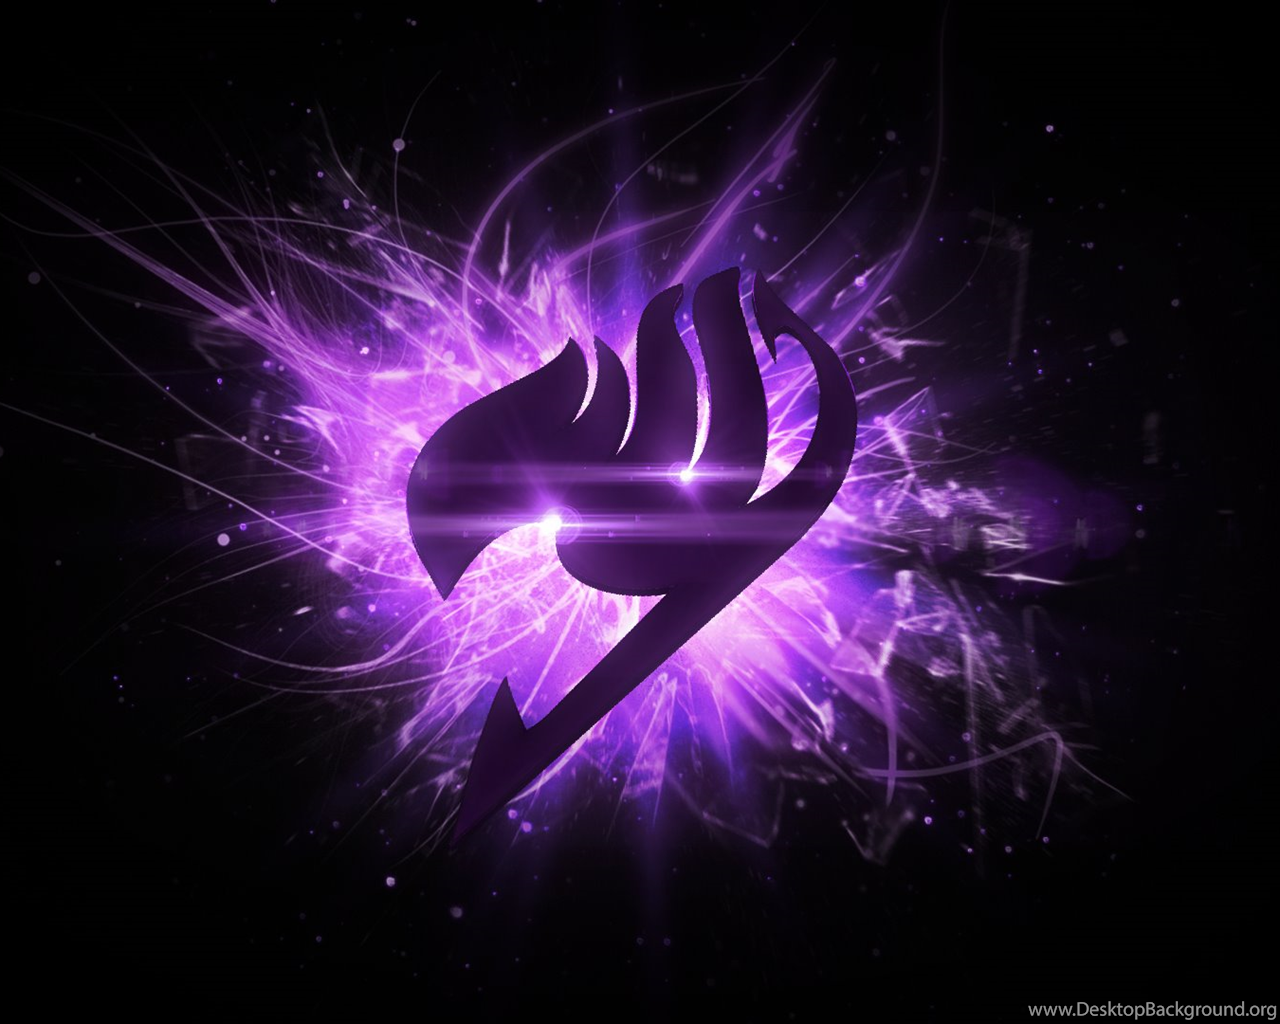 fairy tail logo wallpapers 1920x1080 desktop background